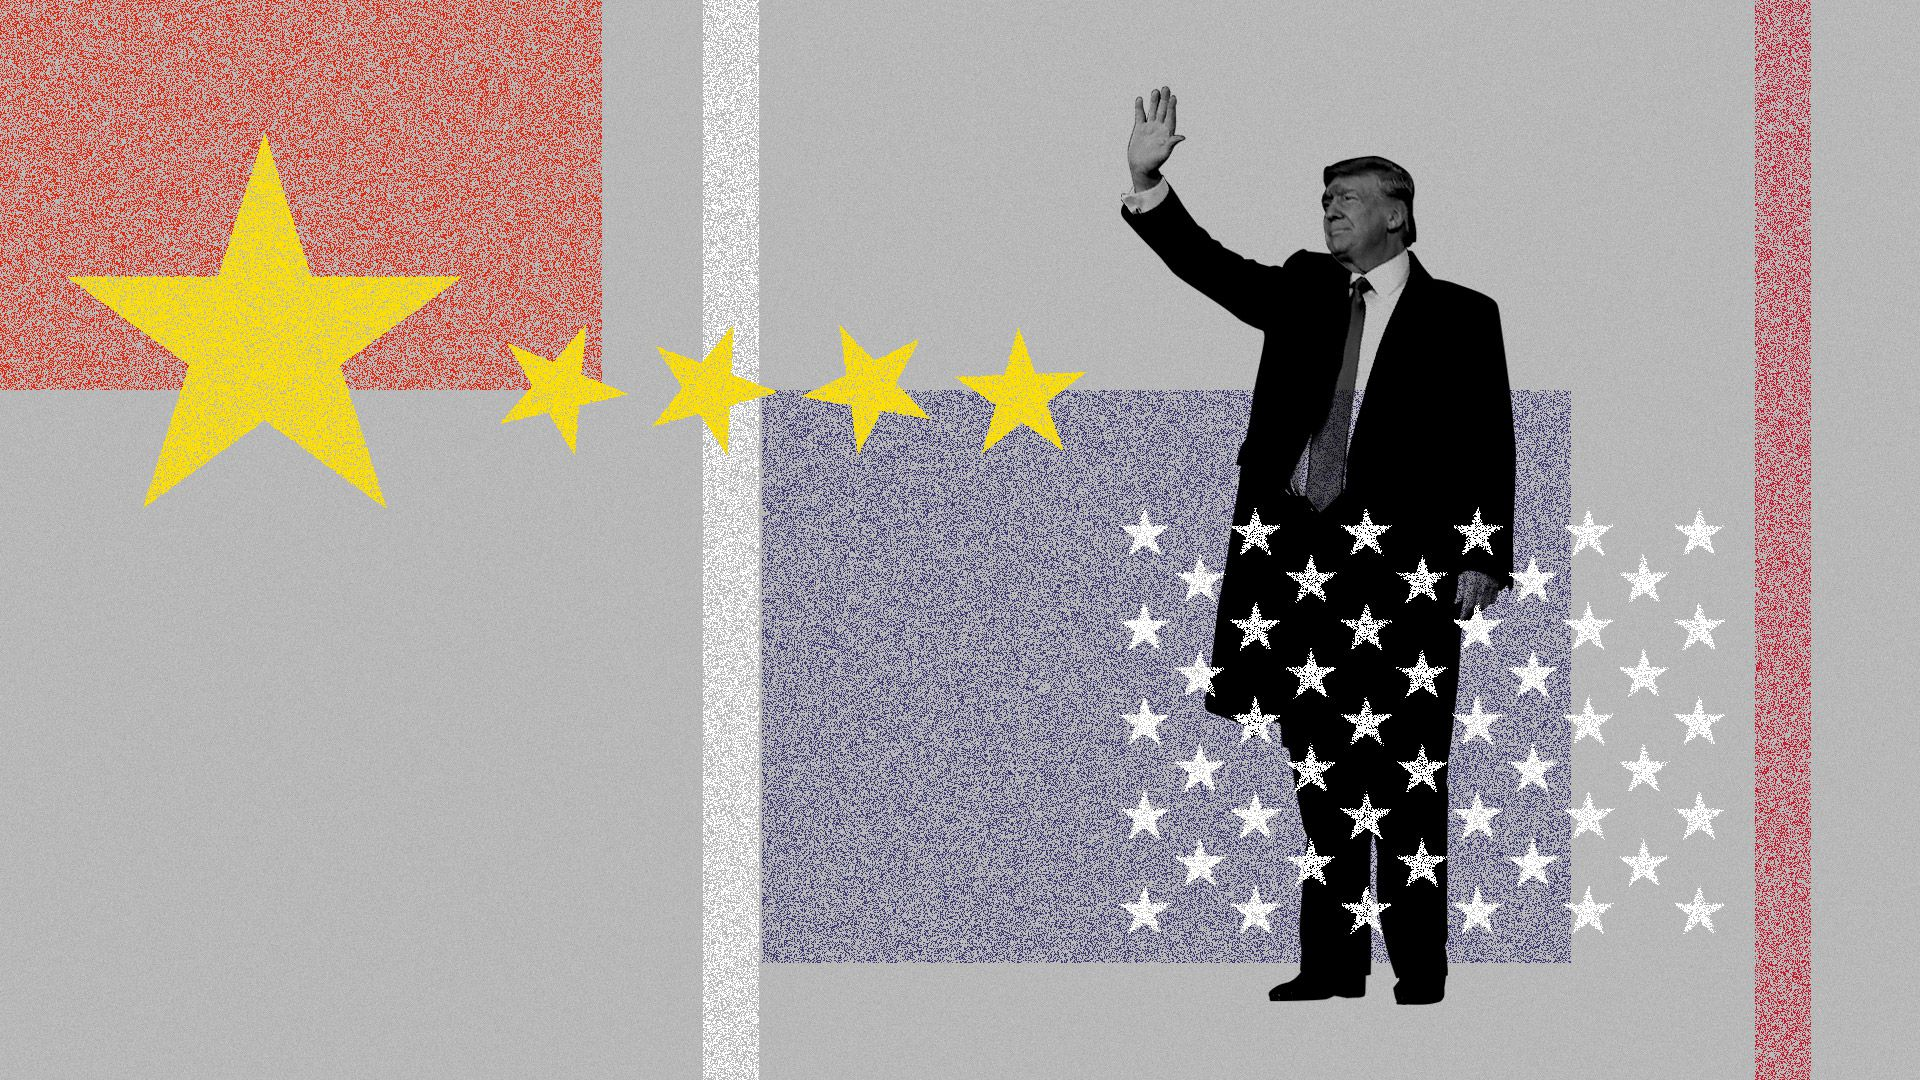 Donald Trump standing among deconstructed Chinese and American flags